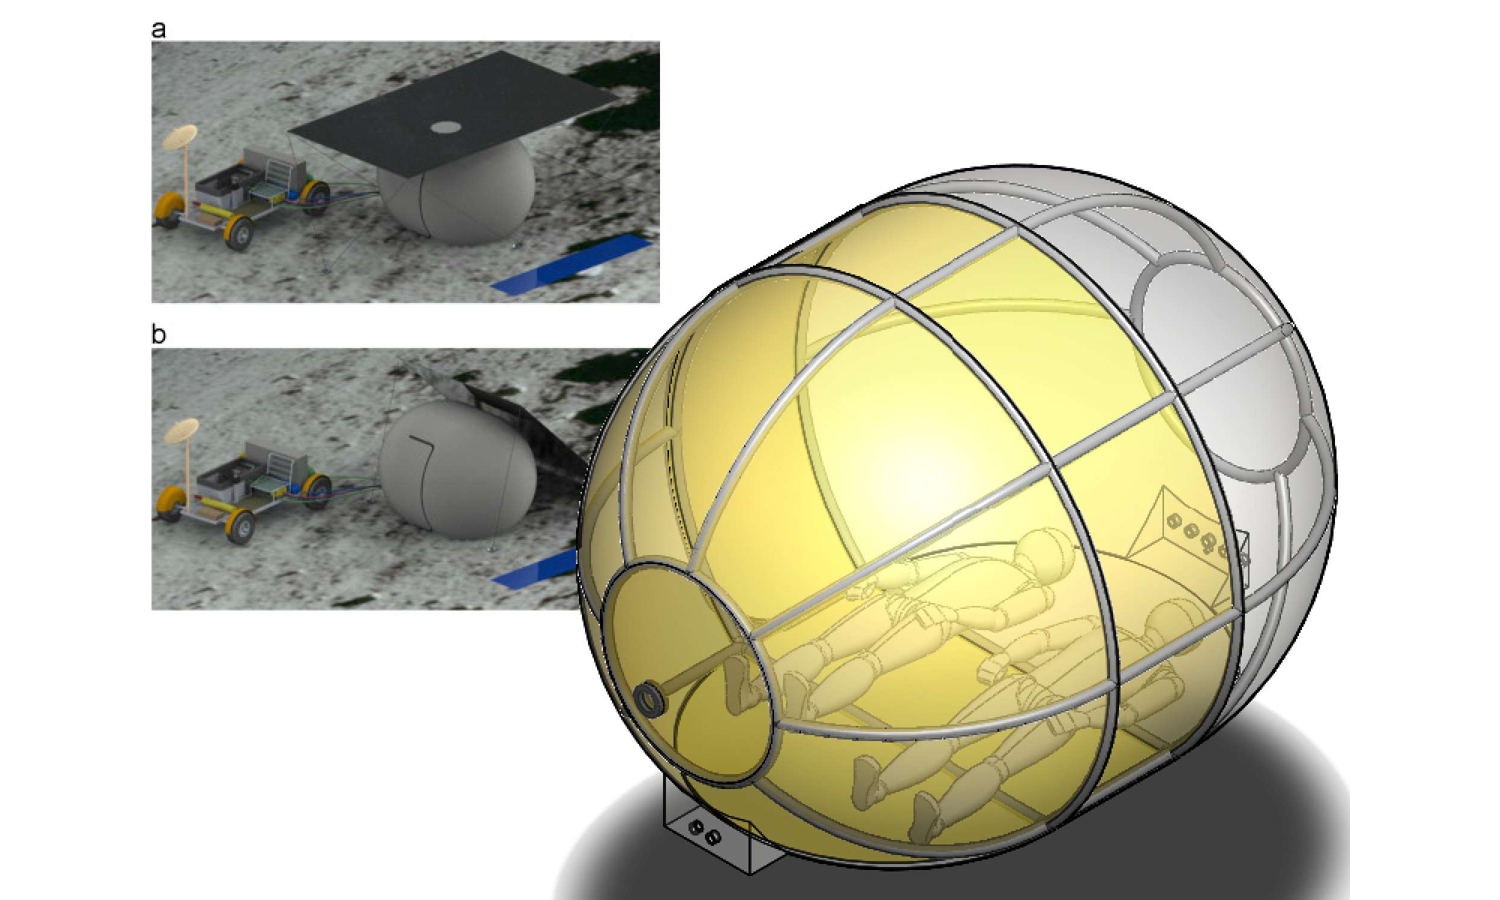 MIT engineers unveil an inflatable shelter for camping on the Moon